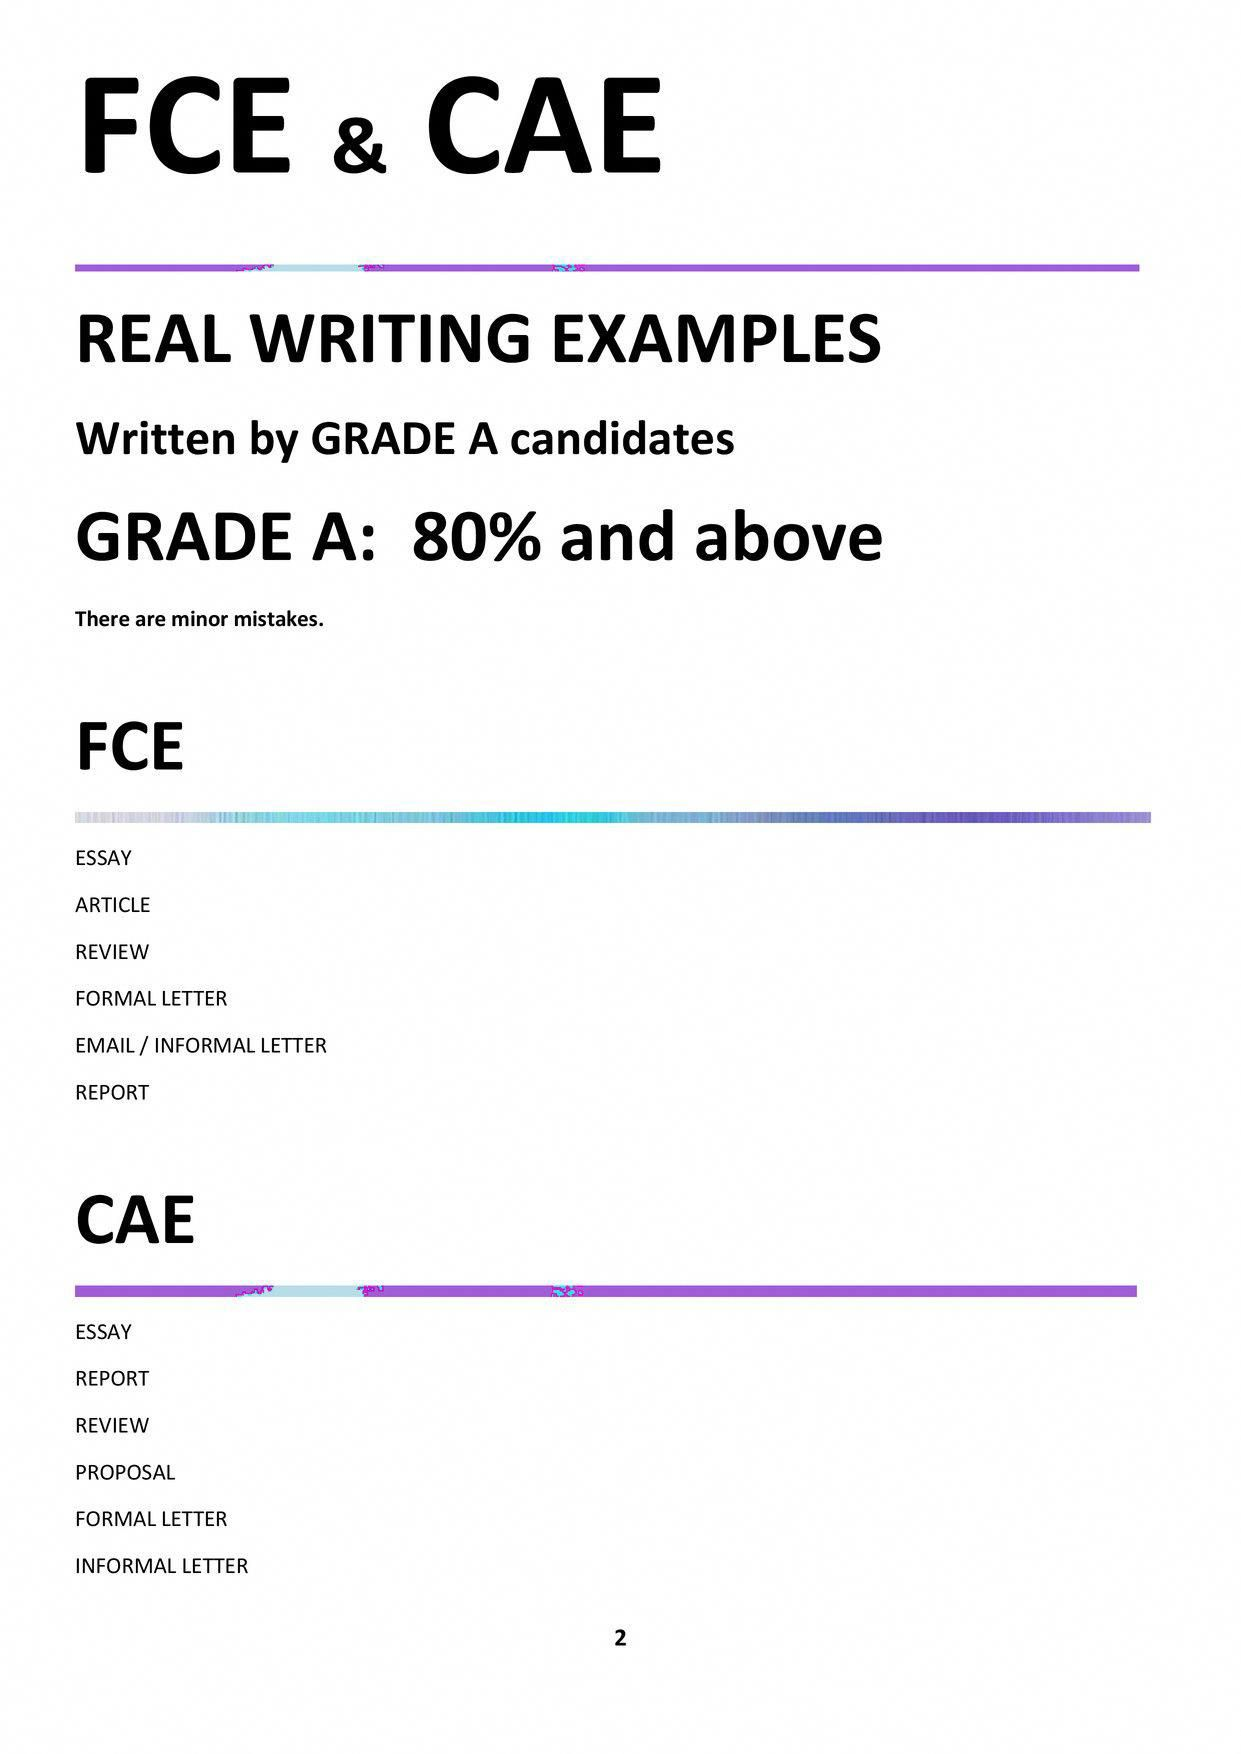 Fce Cae Real Writing Examples Resumewritingexamples Resume